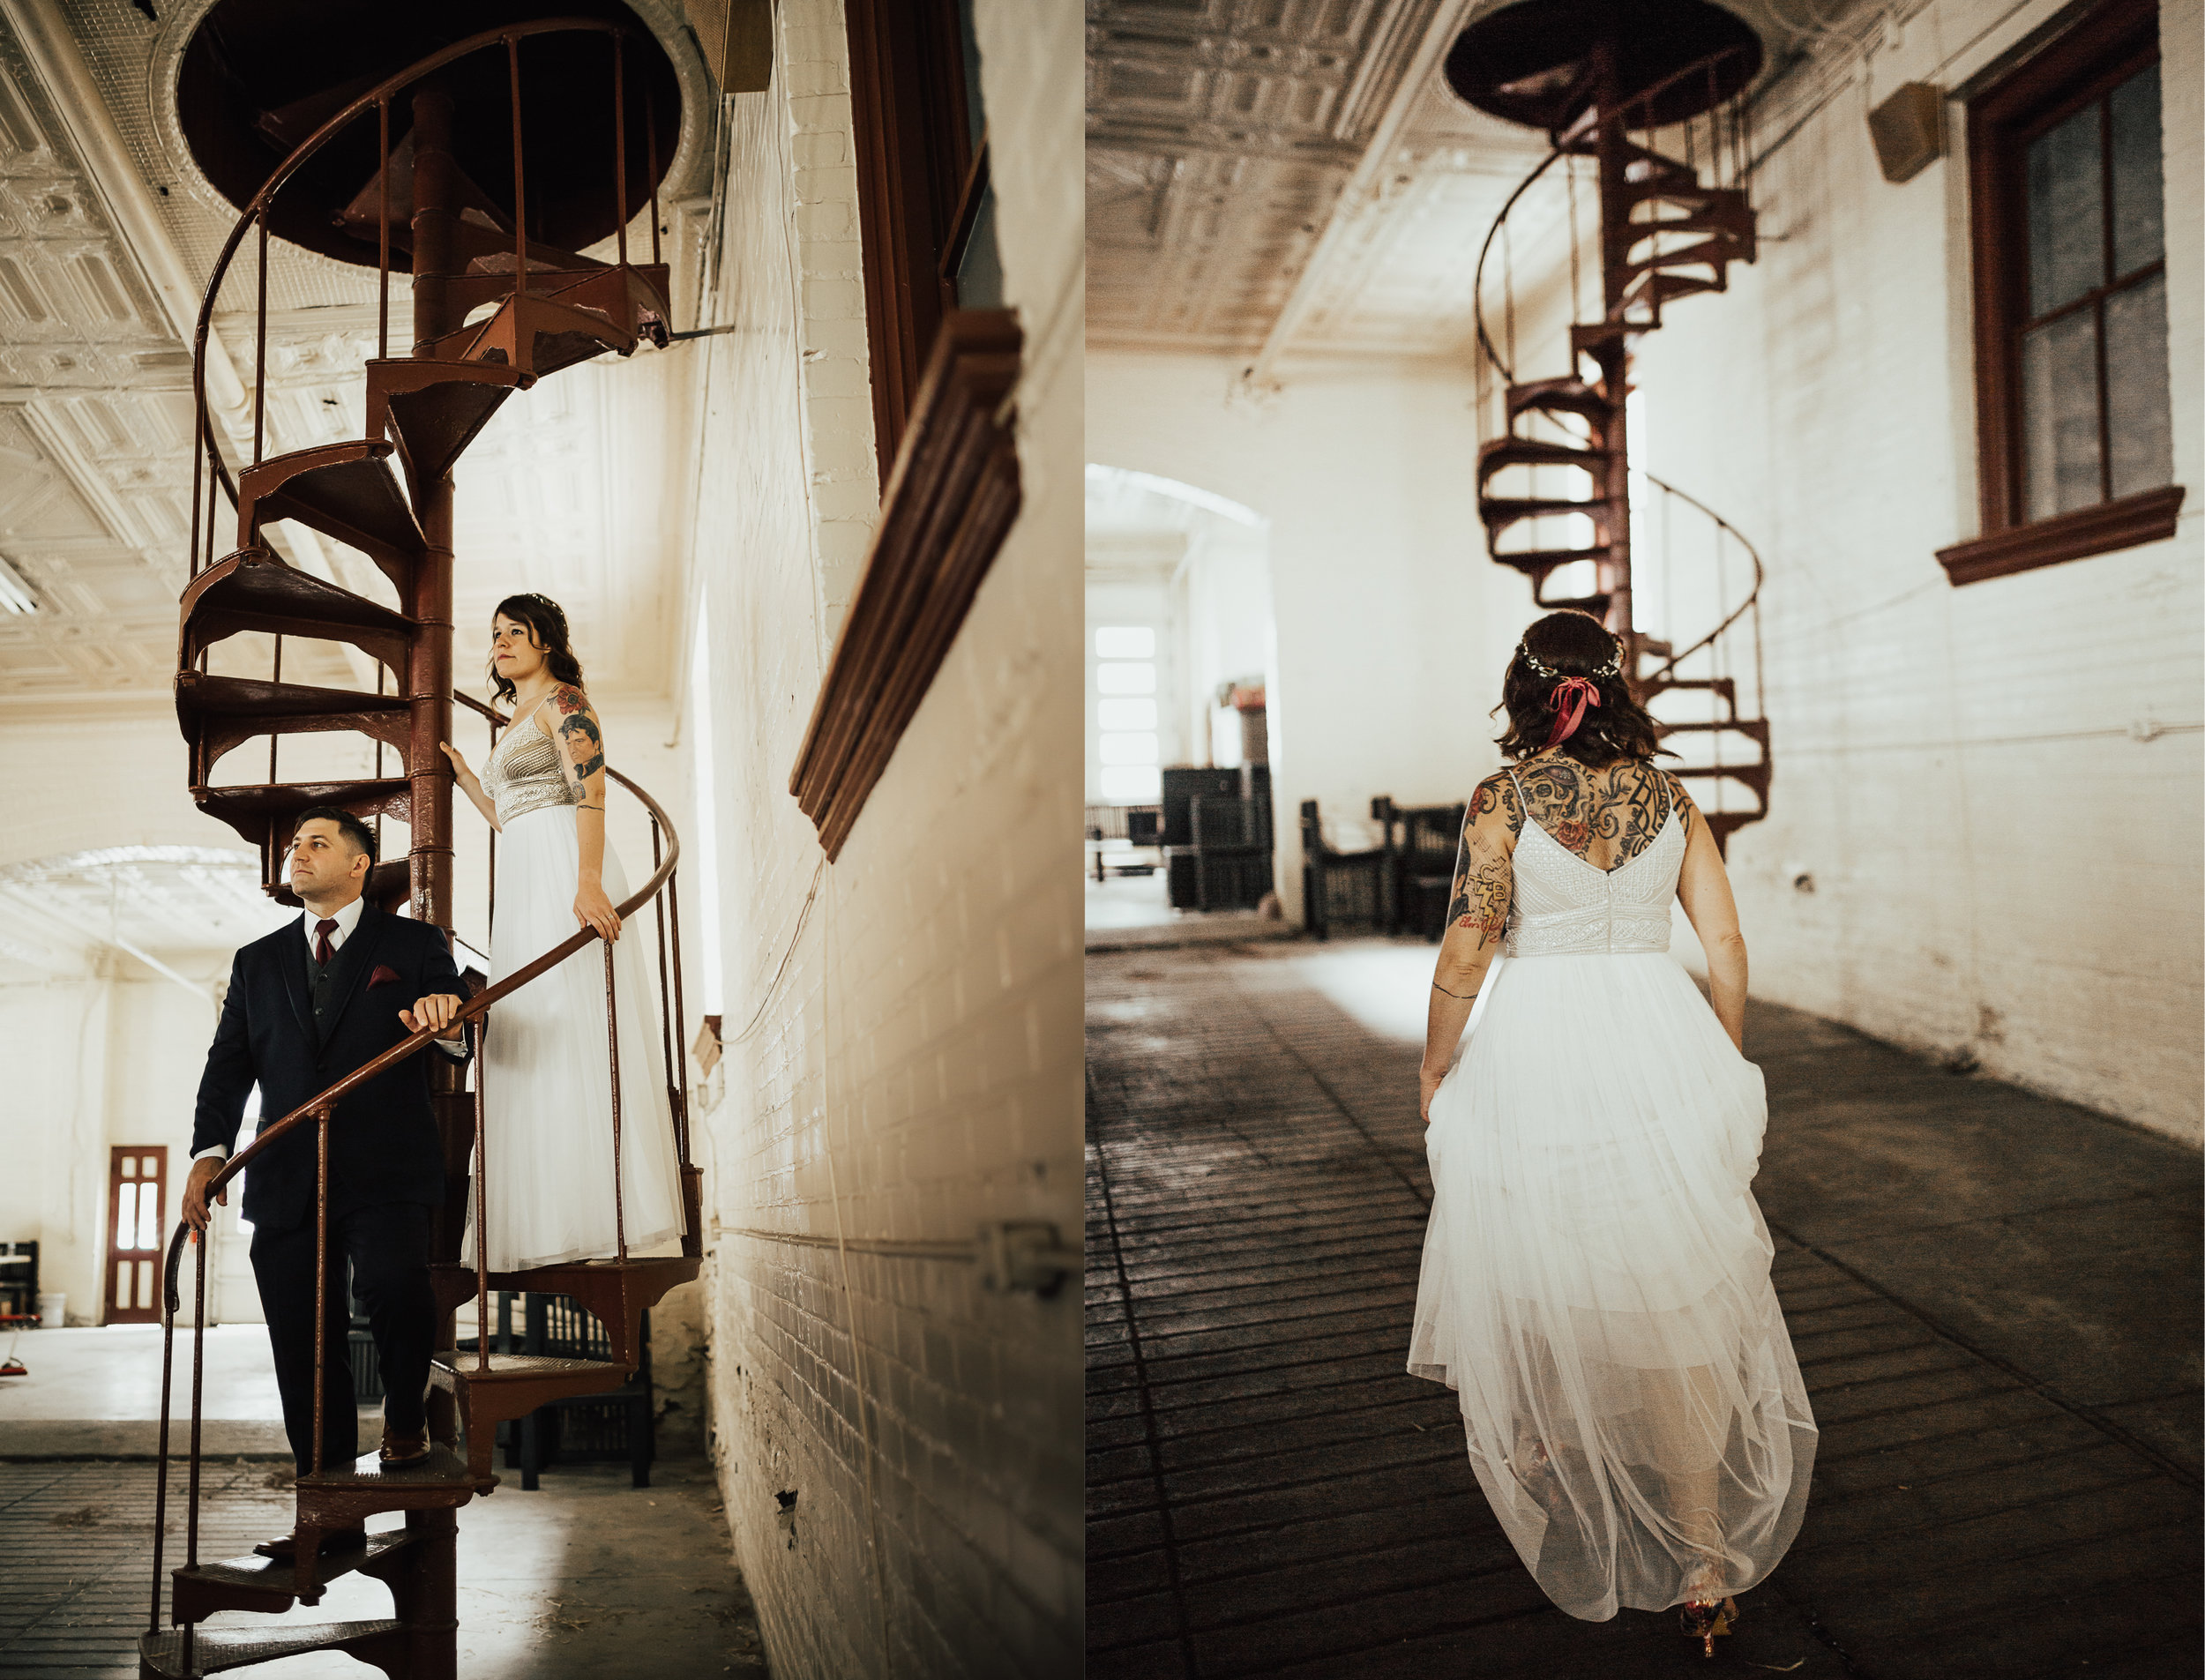 This spiral staircase is what dreams are made of. Not only is it gorgeous, but Annie told me it's true purpose. In the early 1900s the firefighters used horses to help them get the job done, and the spiral staircase helped keep the horses from going upstairs.